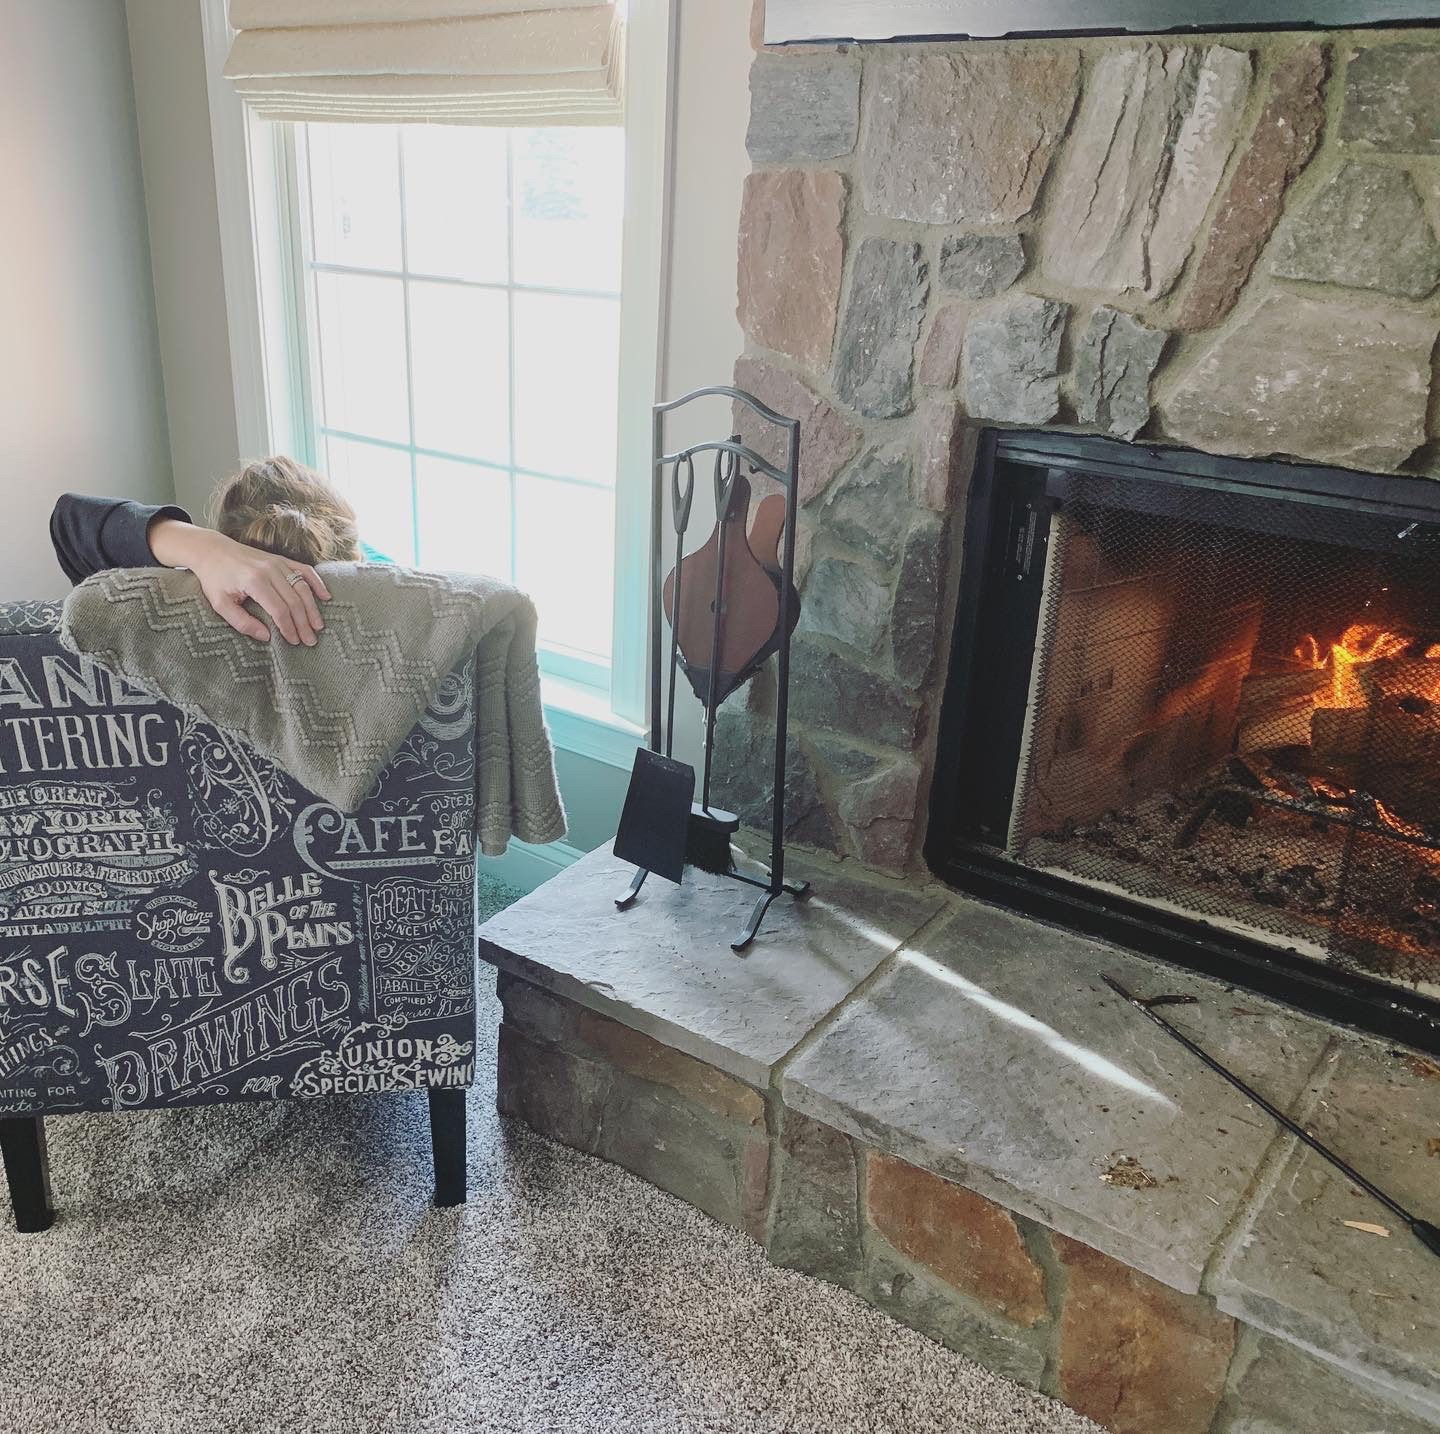 20 Ways to Practice Hygge at Home